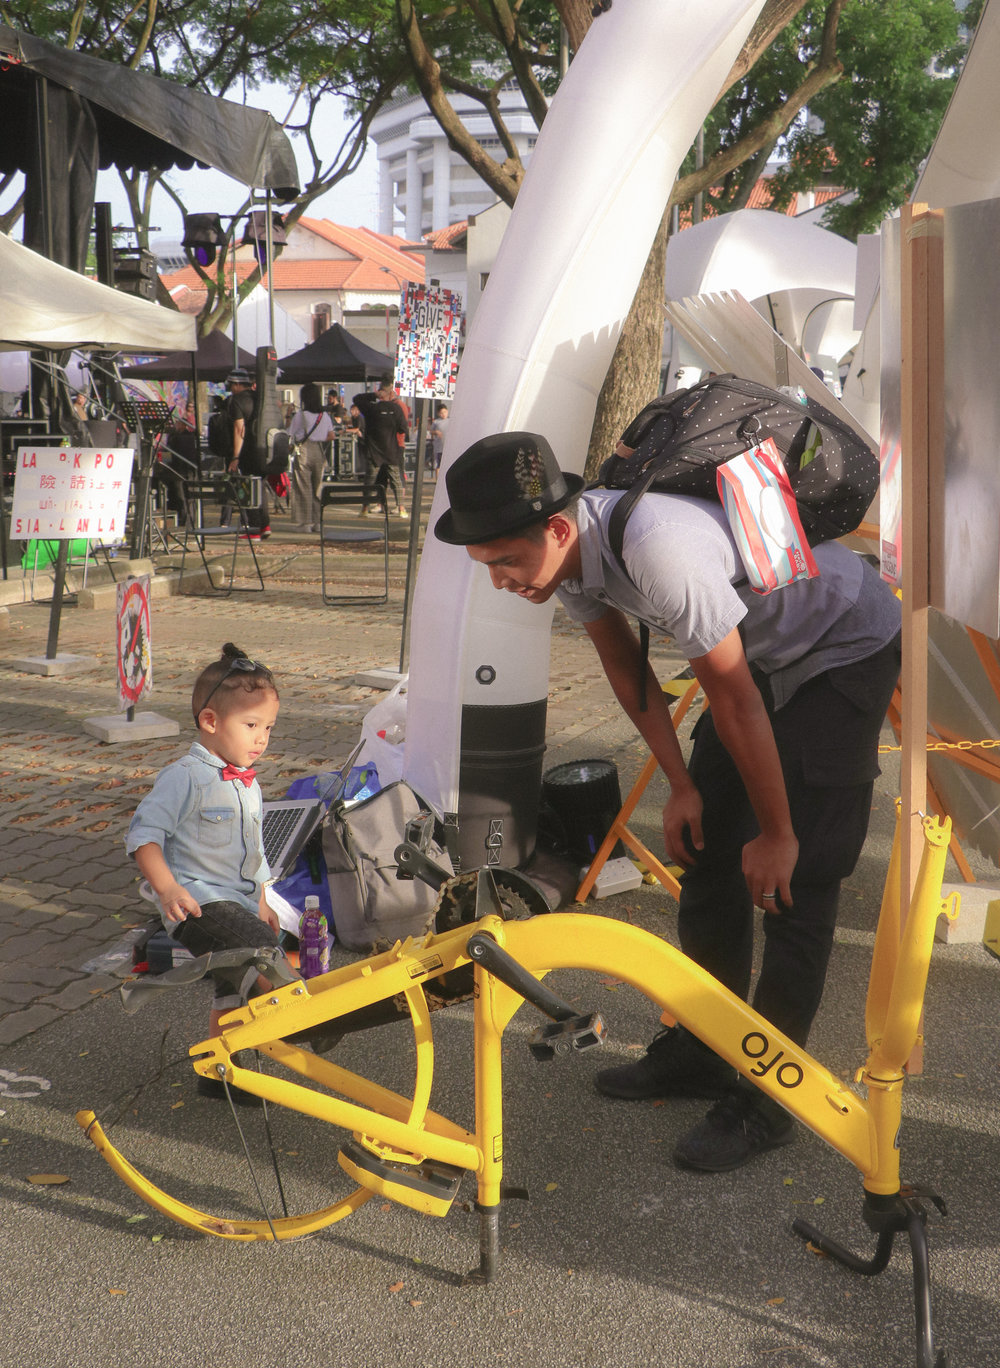 Visitors looking at Trase One's piece, which is mounted onto an O-Bike.